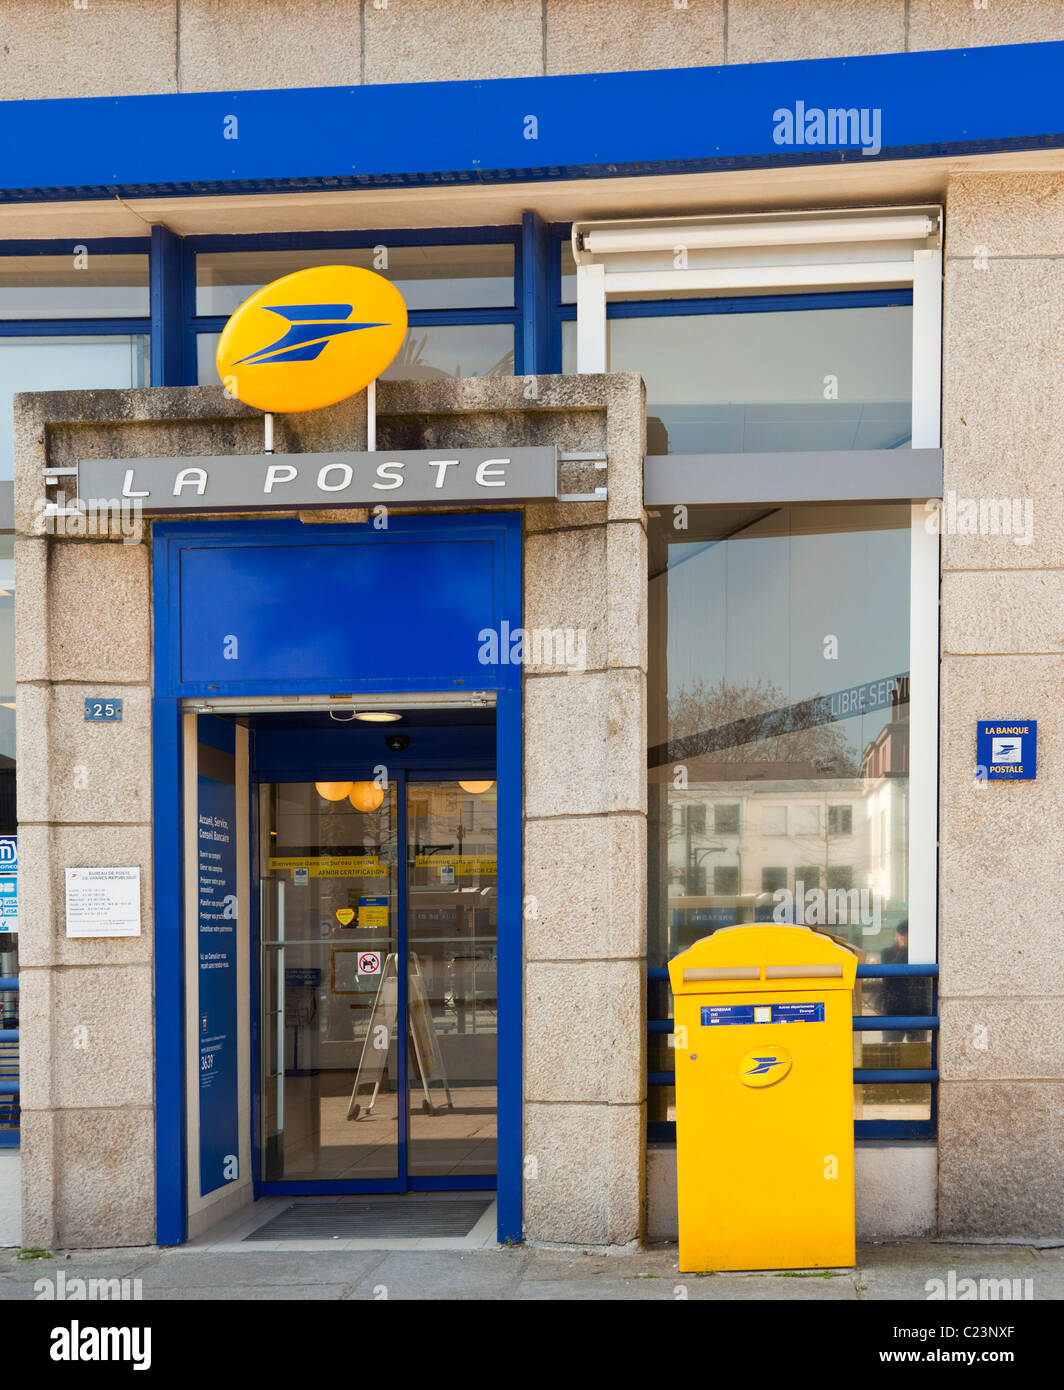 La poste french post office building france europe - Bureau de poste ouvert le samedi paris ...